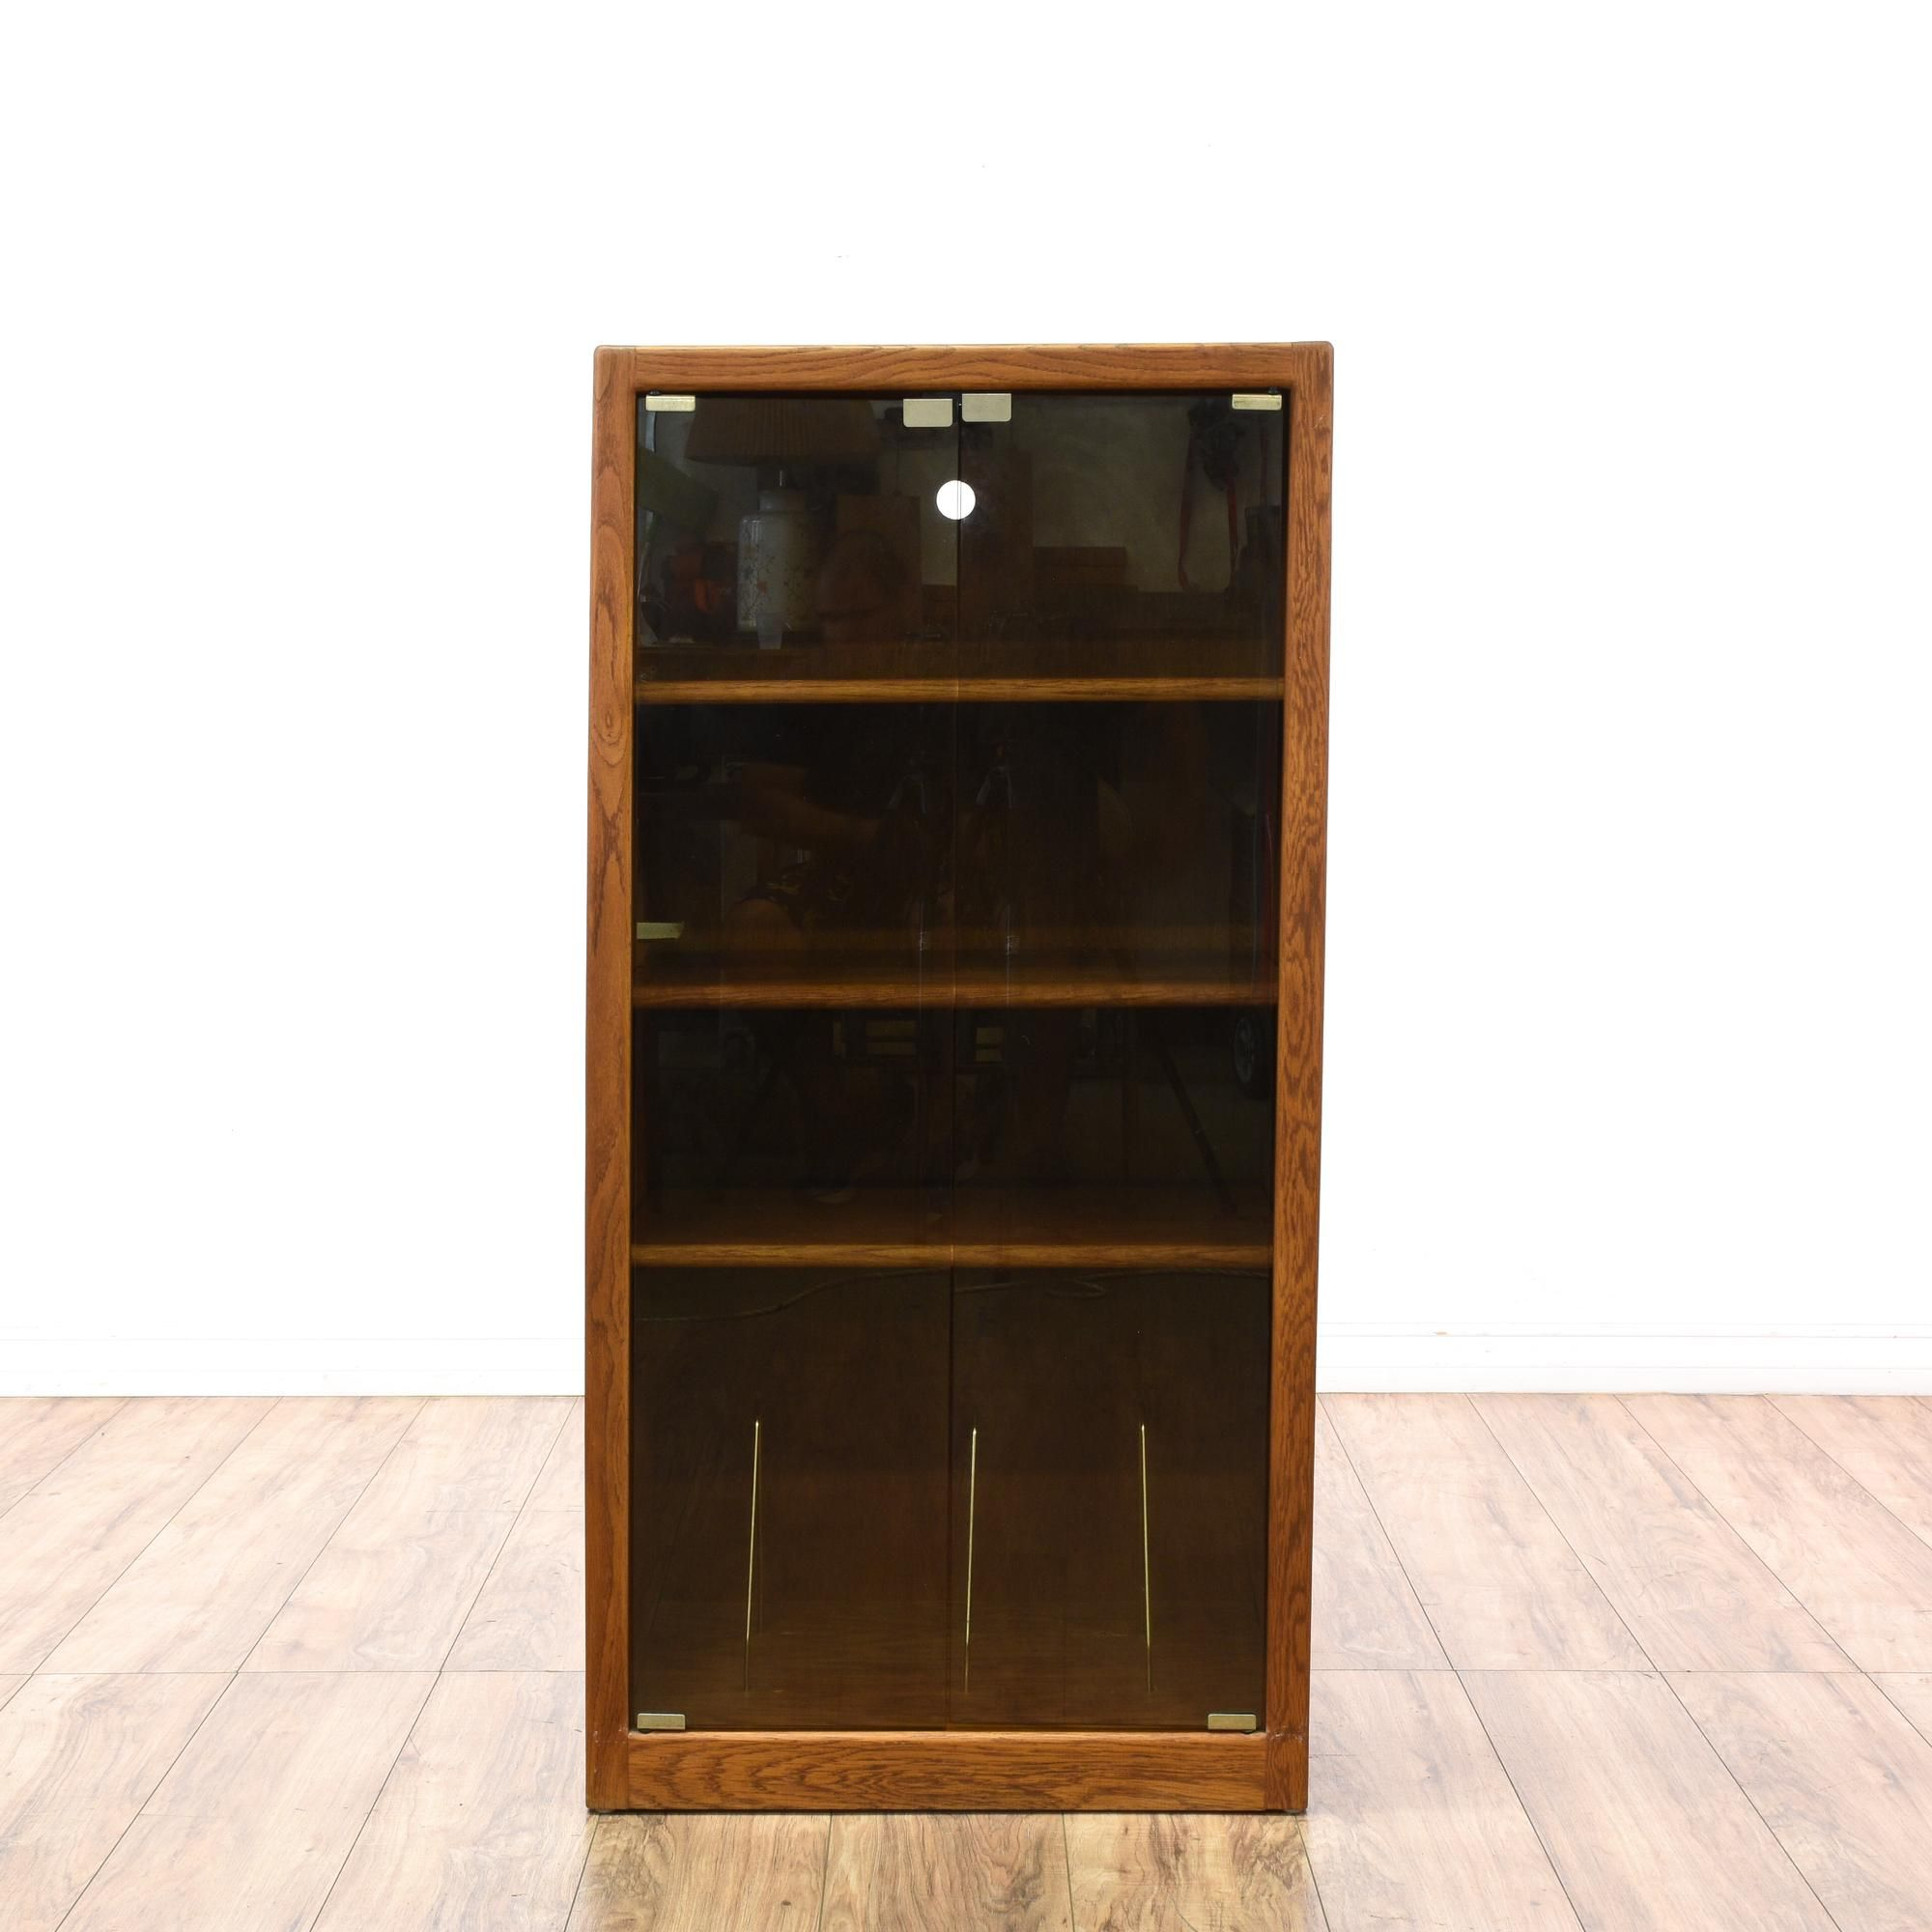 This media cabinet is featured in a wood with a glossy oak veneer